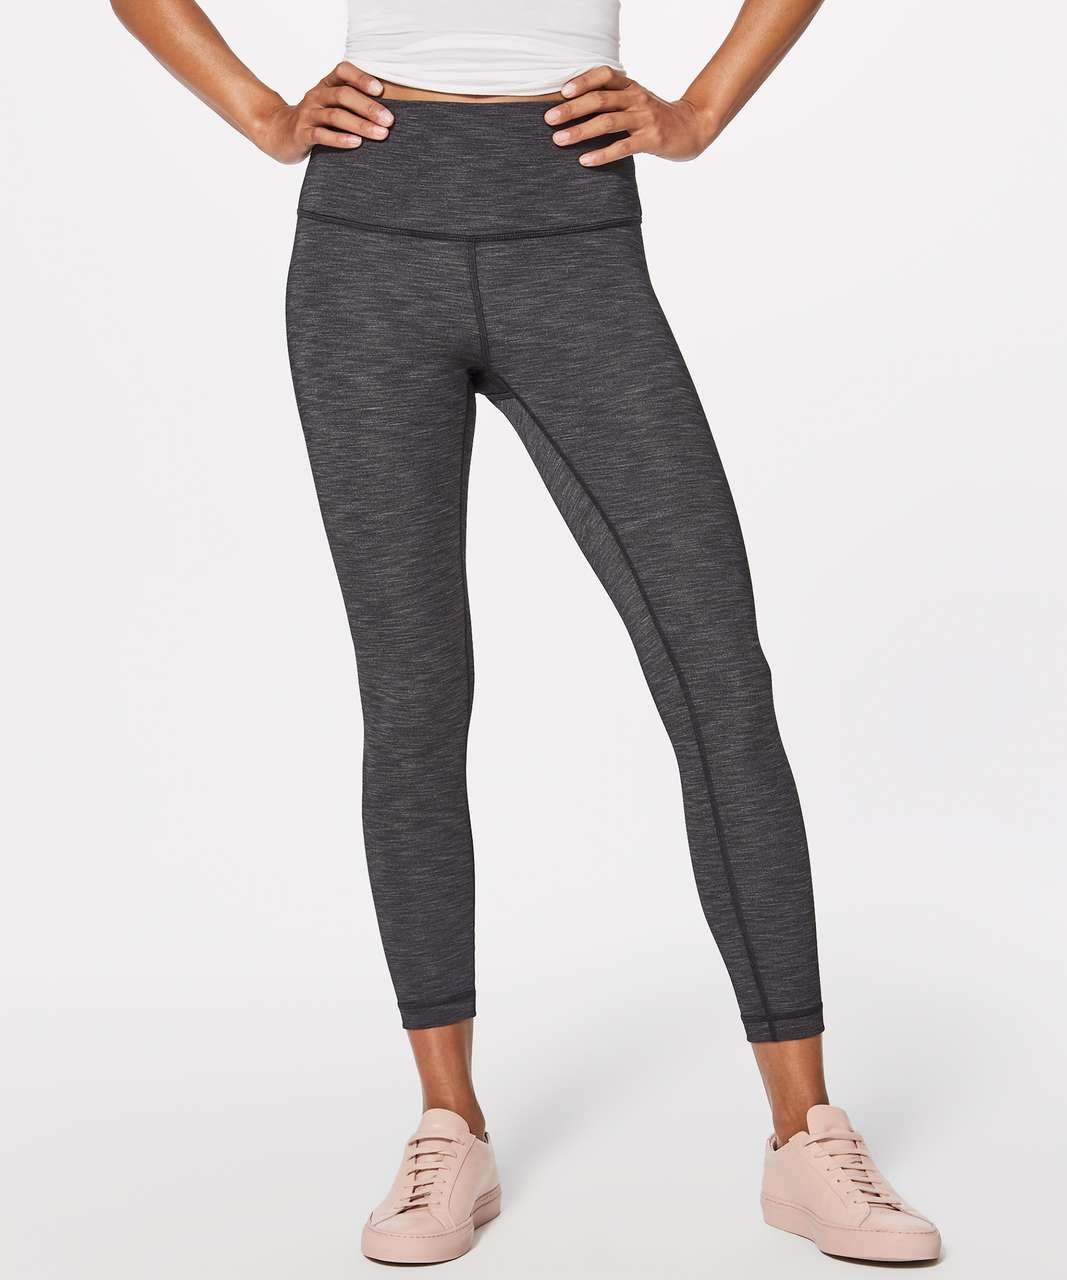 66ec3cf4c6 Lululemon Wunder Under Hi-Rise 7/8 Tight (Brushed Full-On Luxtreme ...